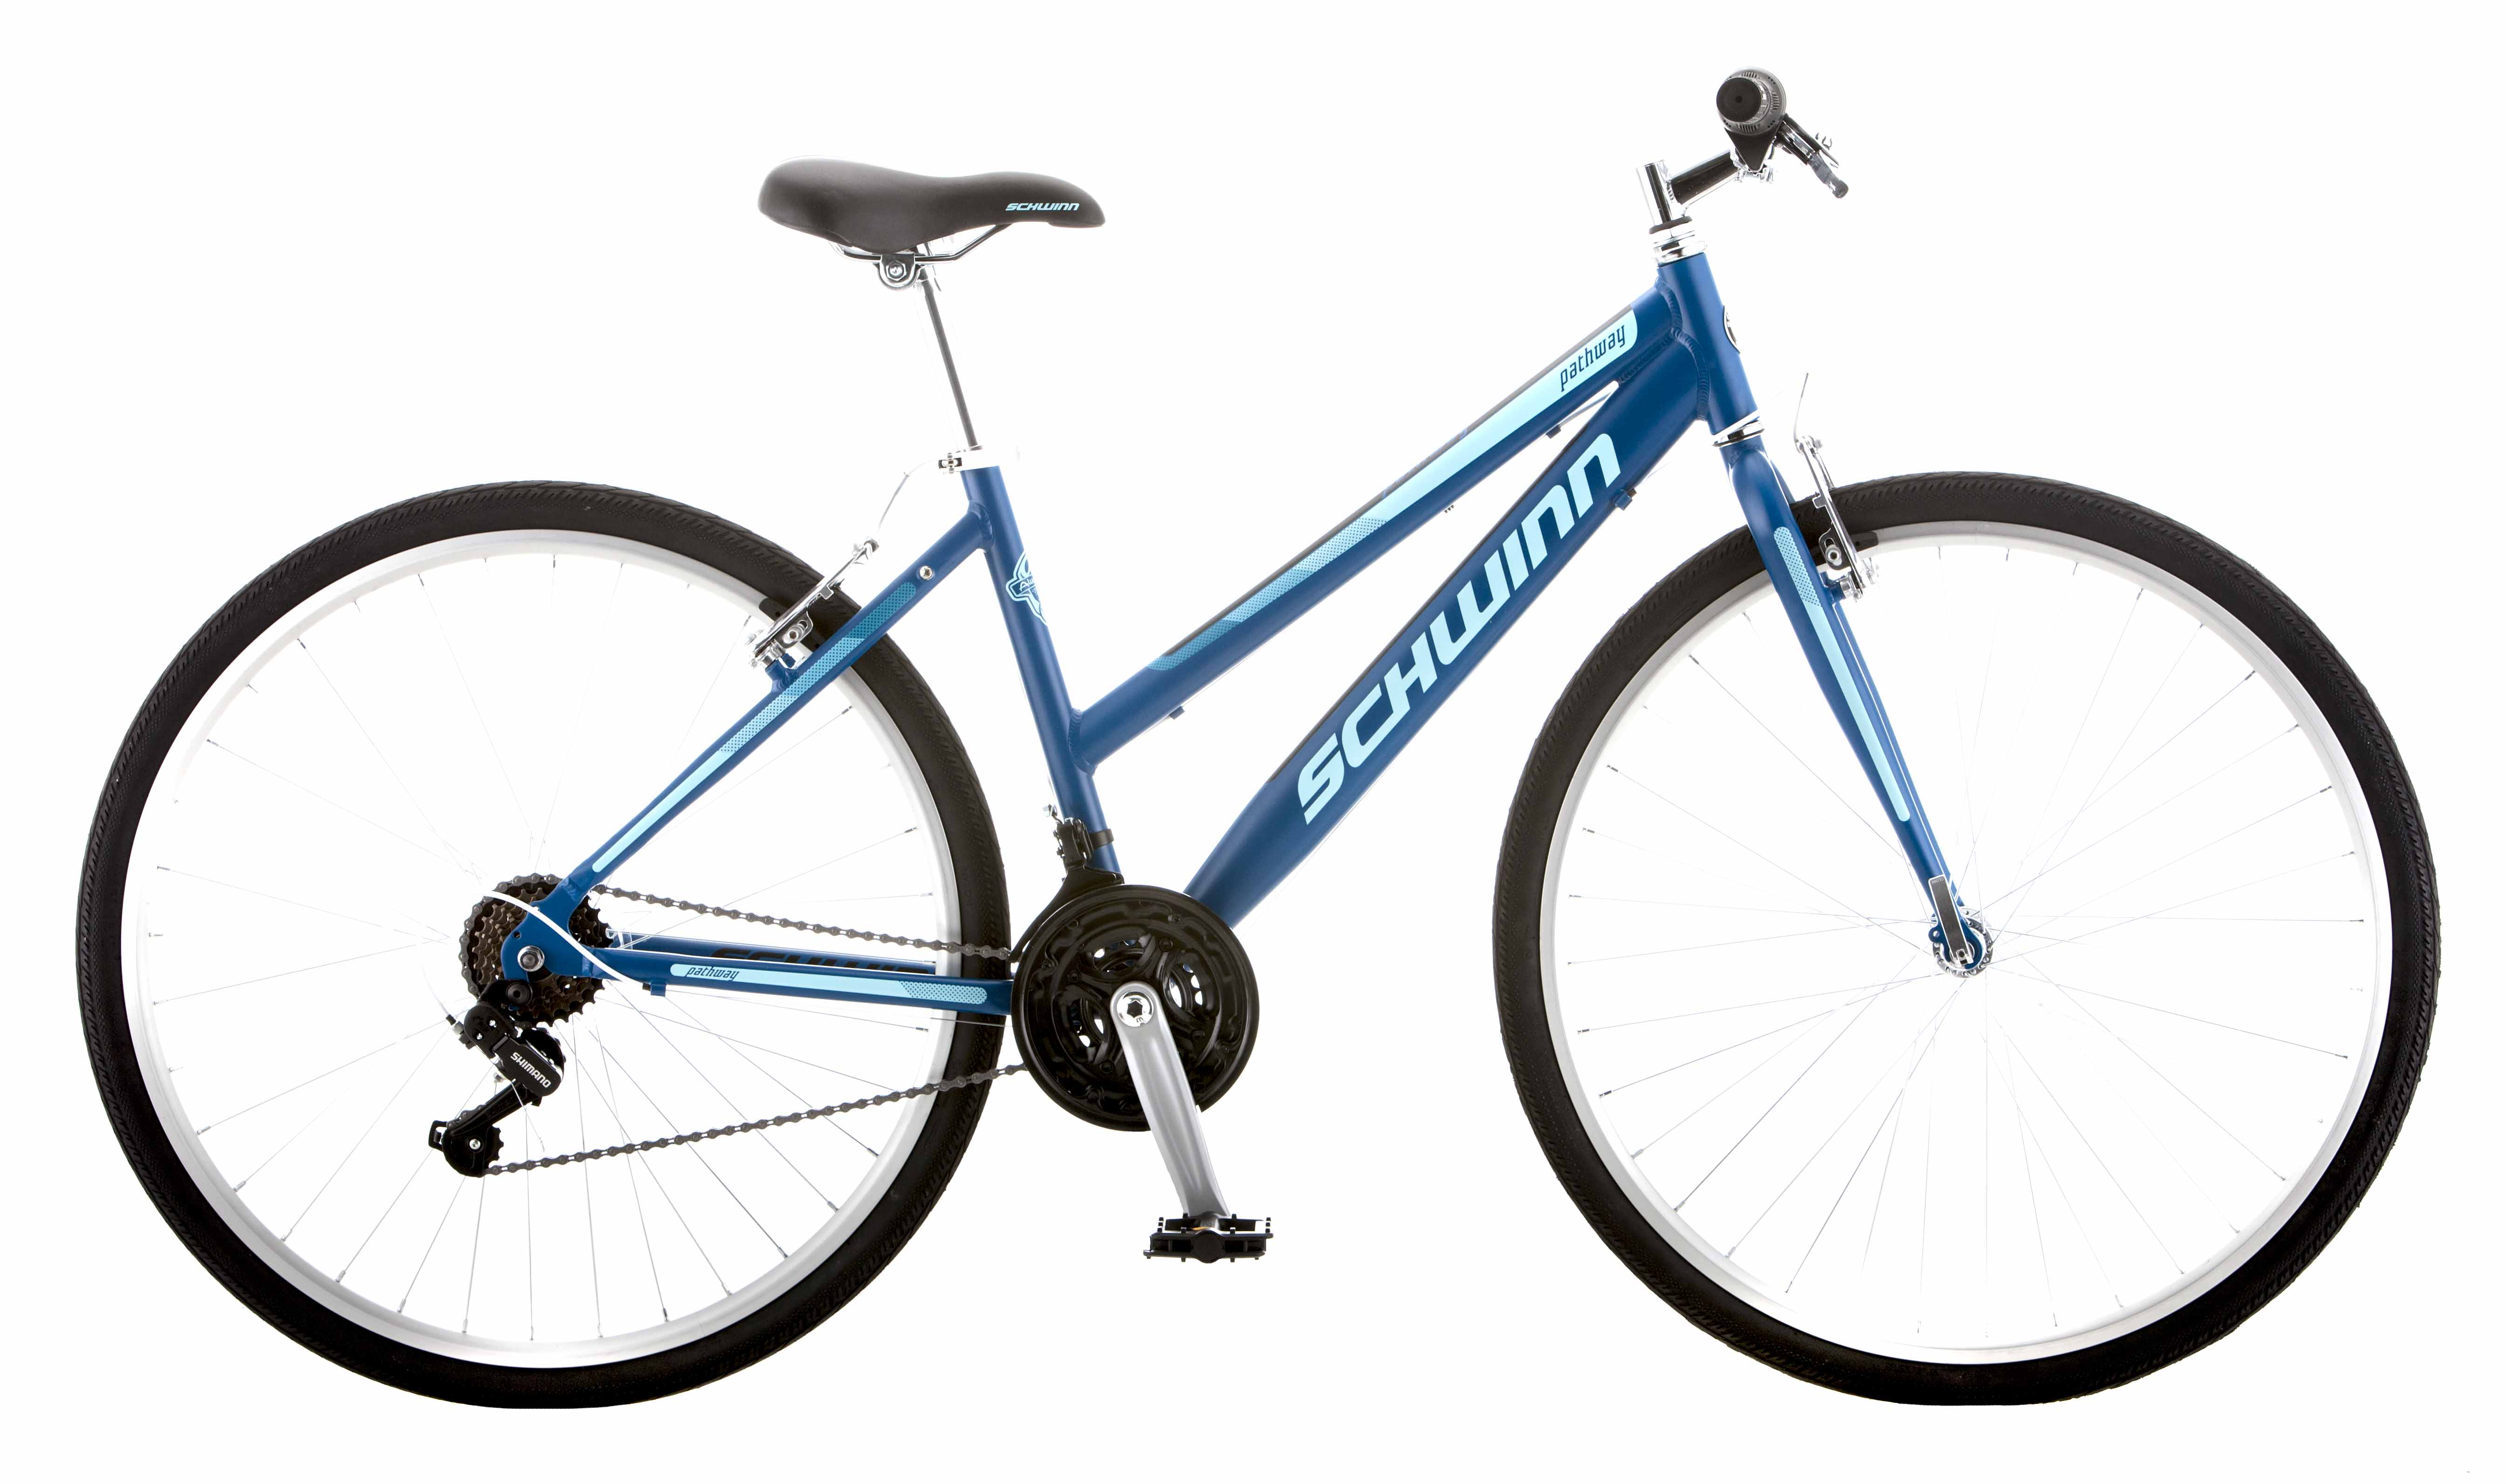 3c0be211f Schwinn 700C Women's Pathway Multi-Use Bike - Walmart.com